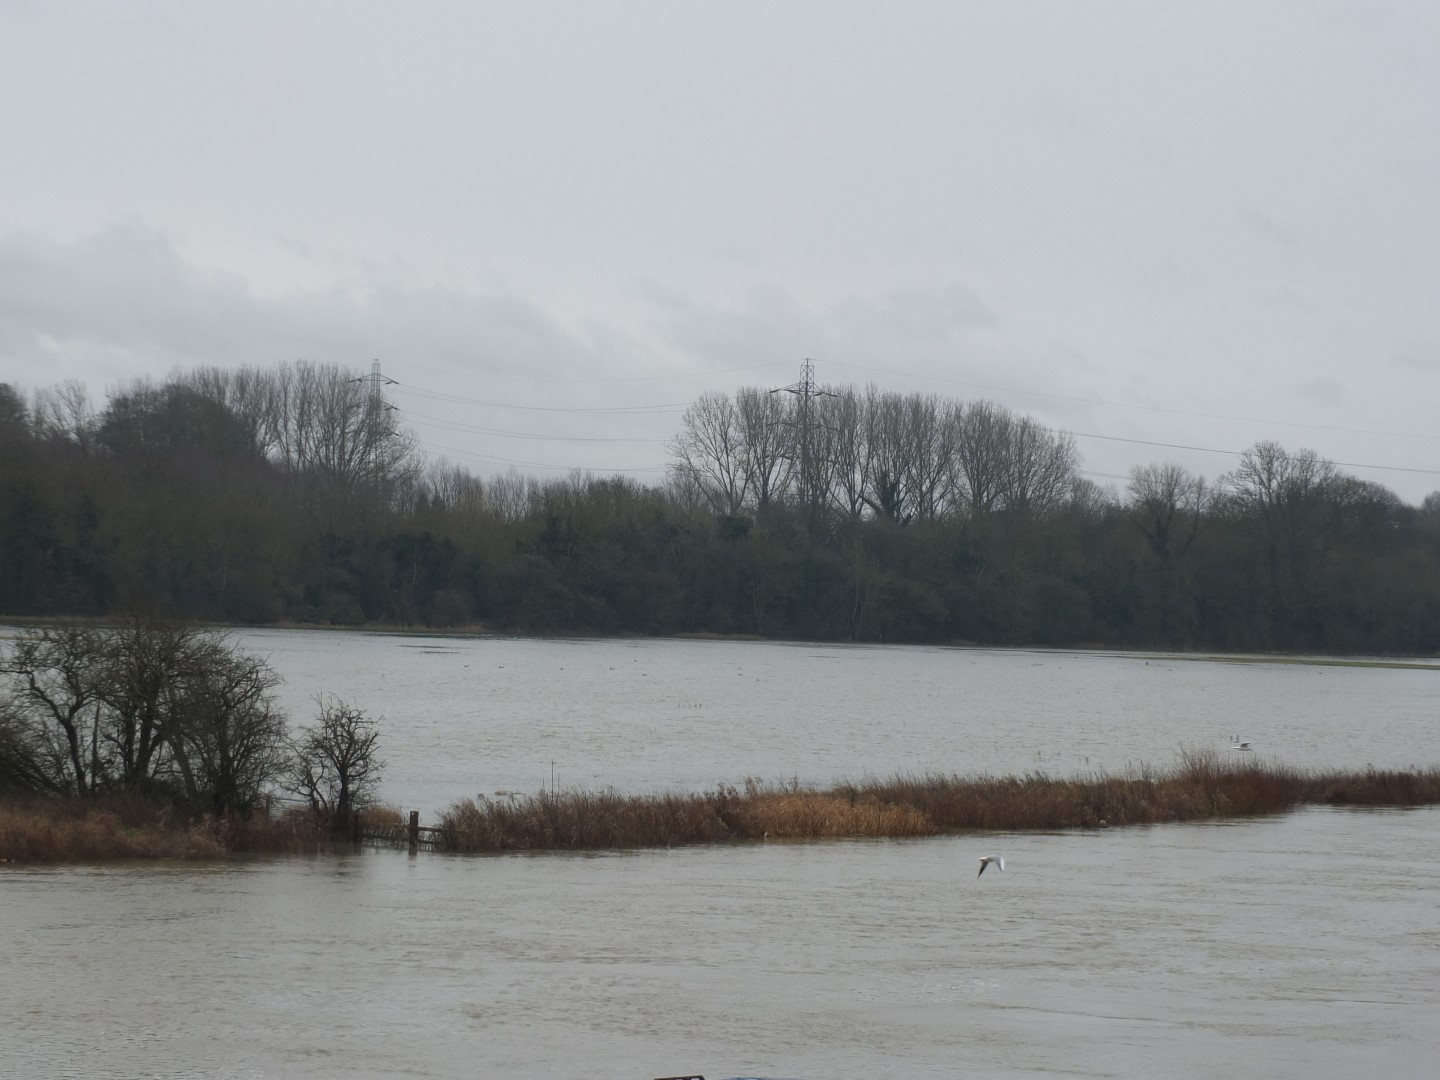 Environment Agency Flood Risk Assessment Rejection